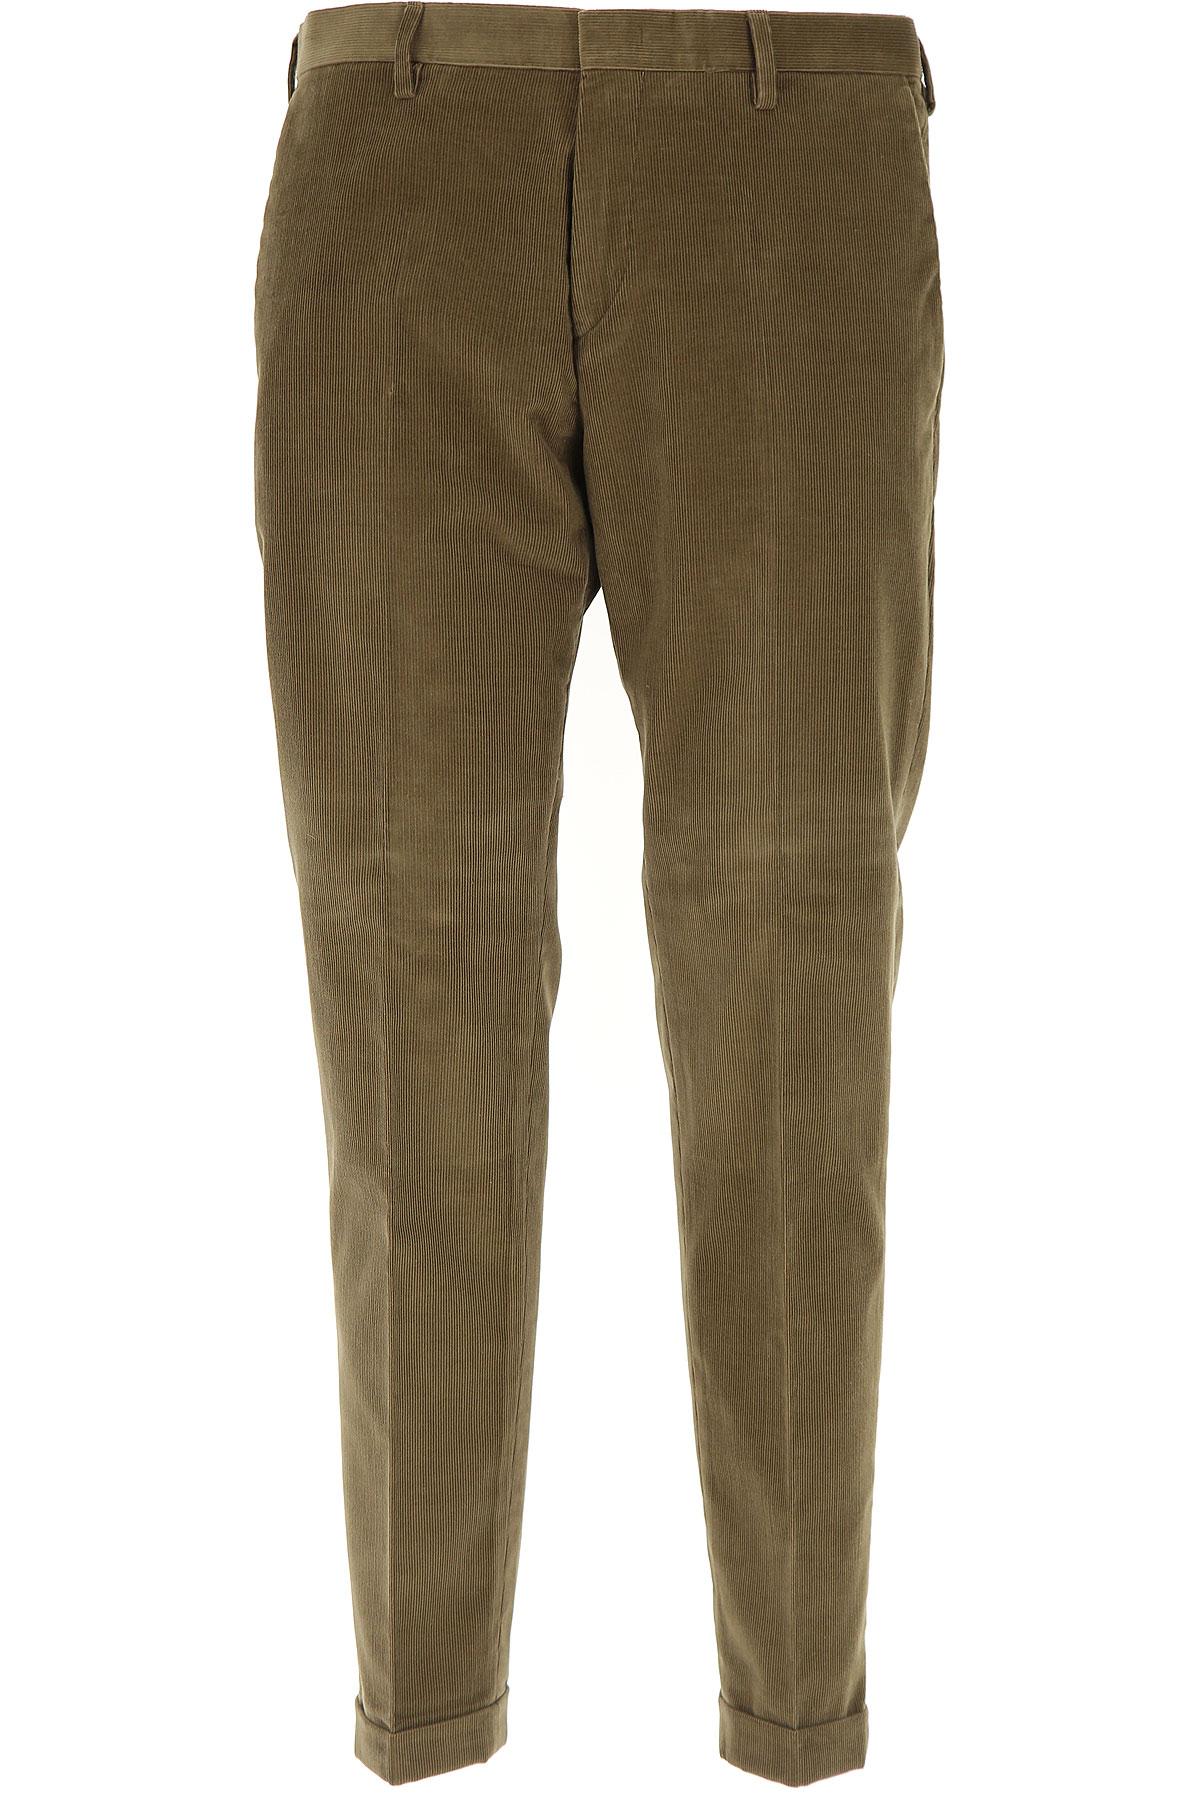 Paul Smith Pants for Men On Sale, Brown, Cotton, 2017, 34 36